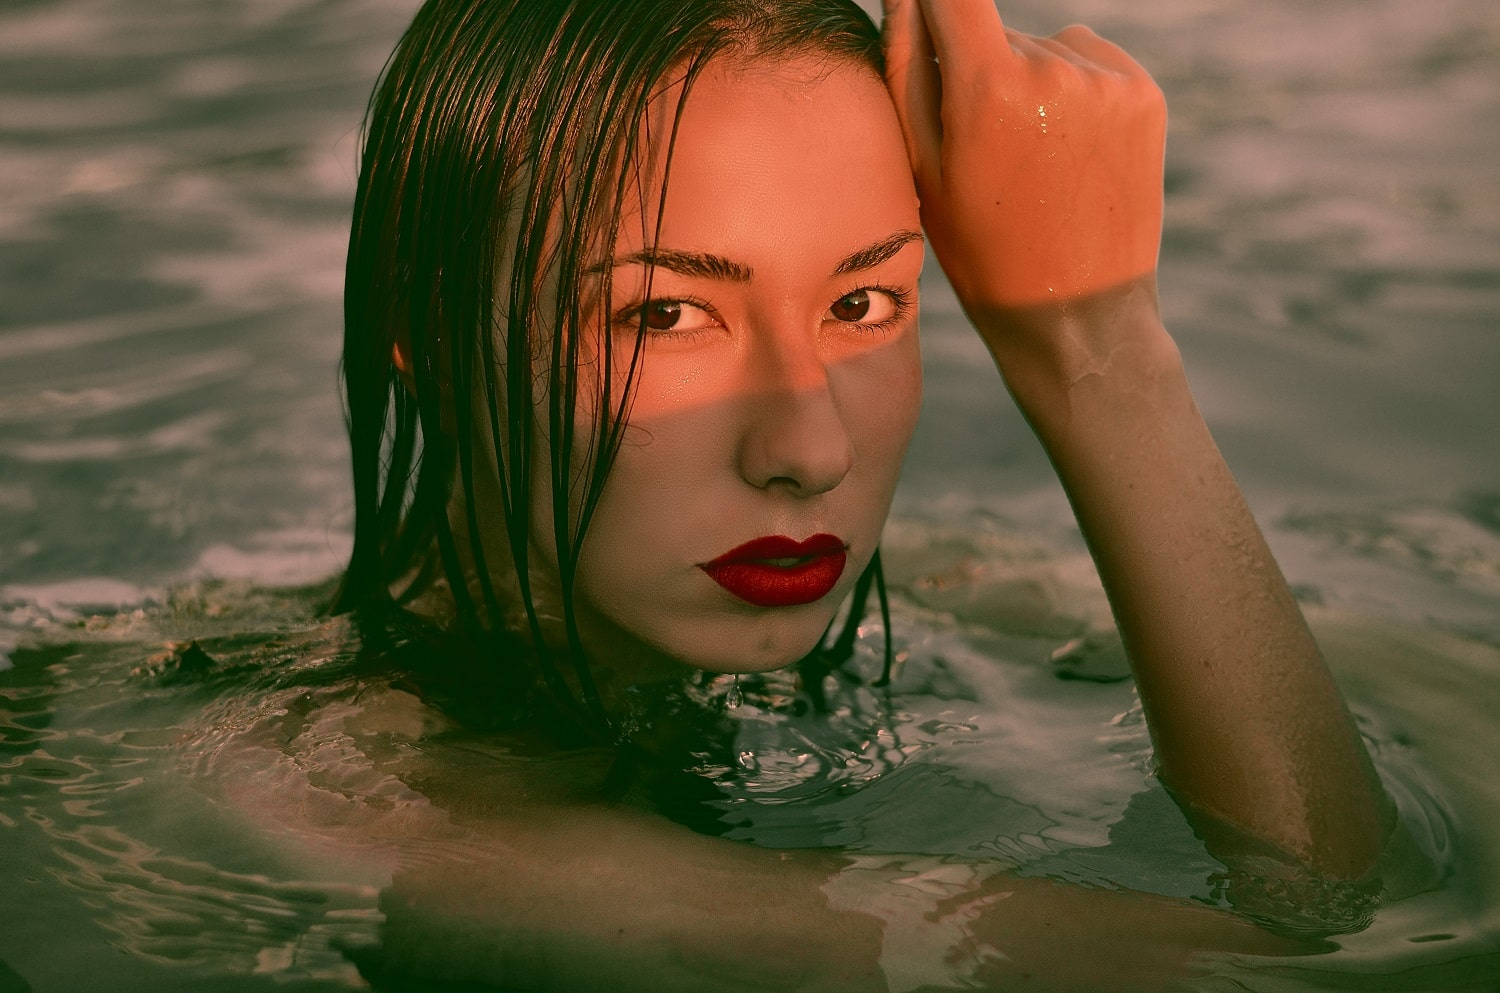 A woman swims in the ocean with red lipstick on